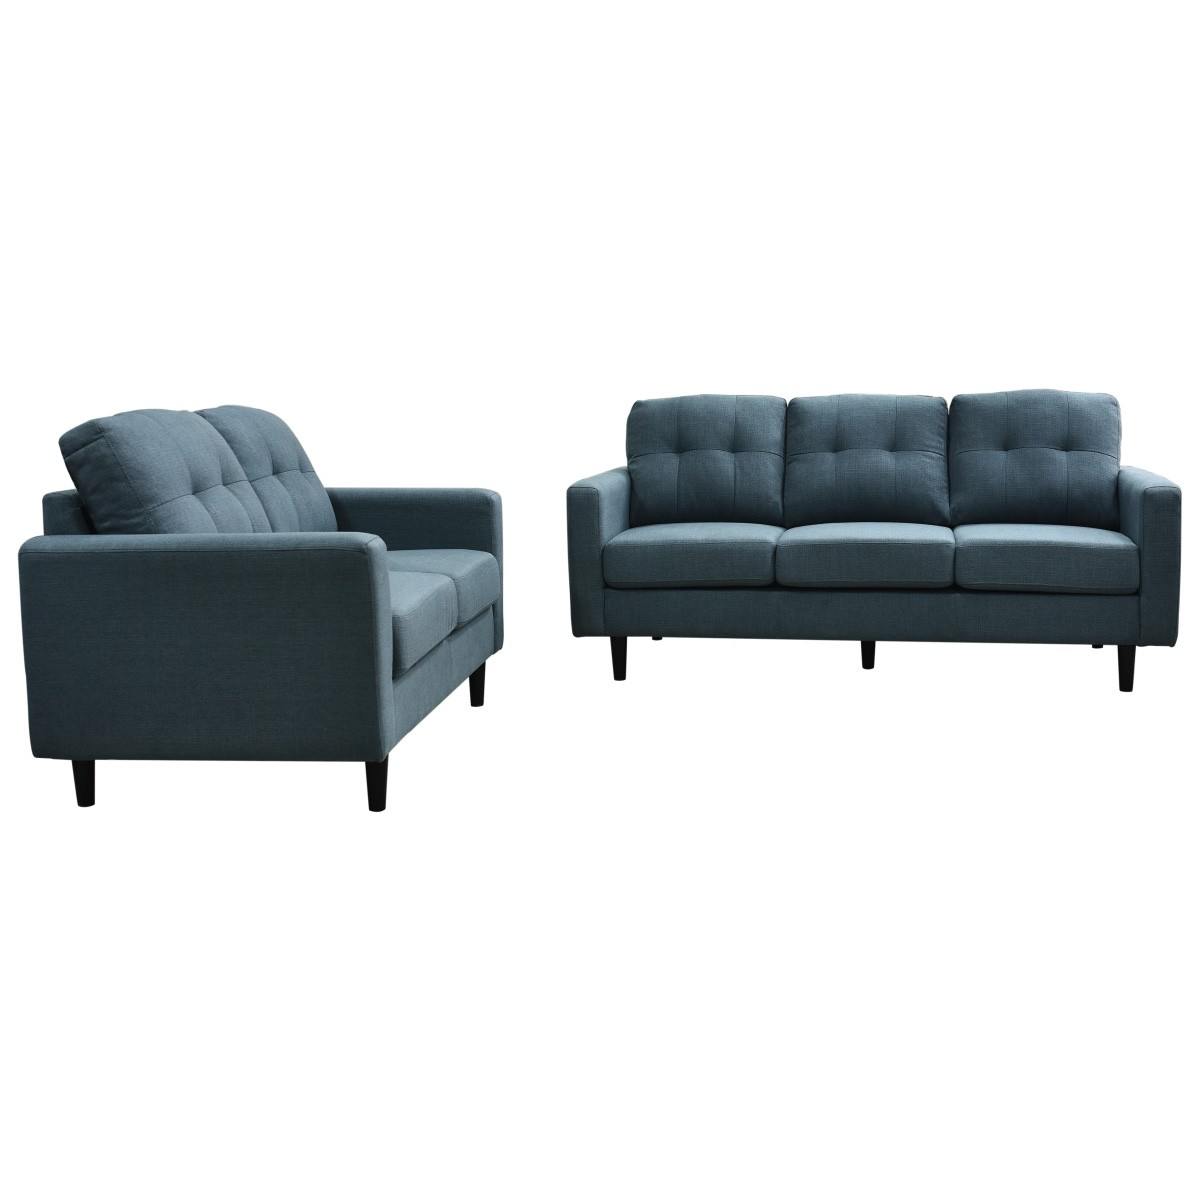 Marsha 3+2 Fabric Sofa Suite, Teal